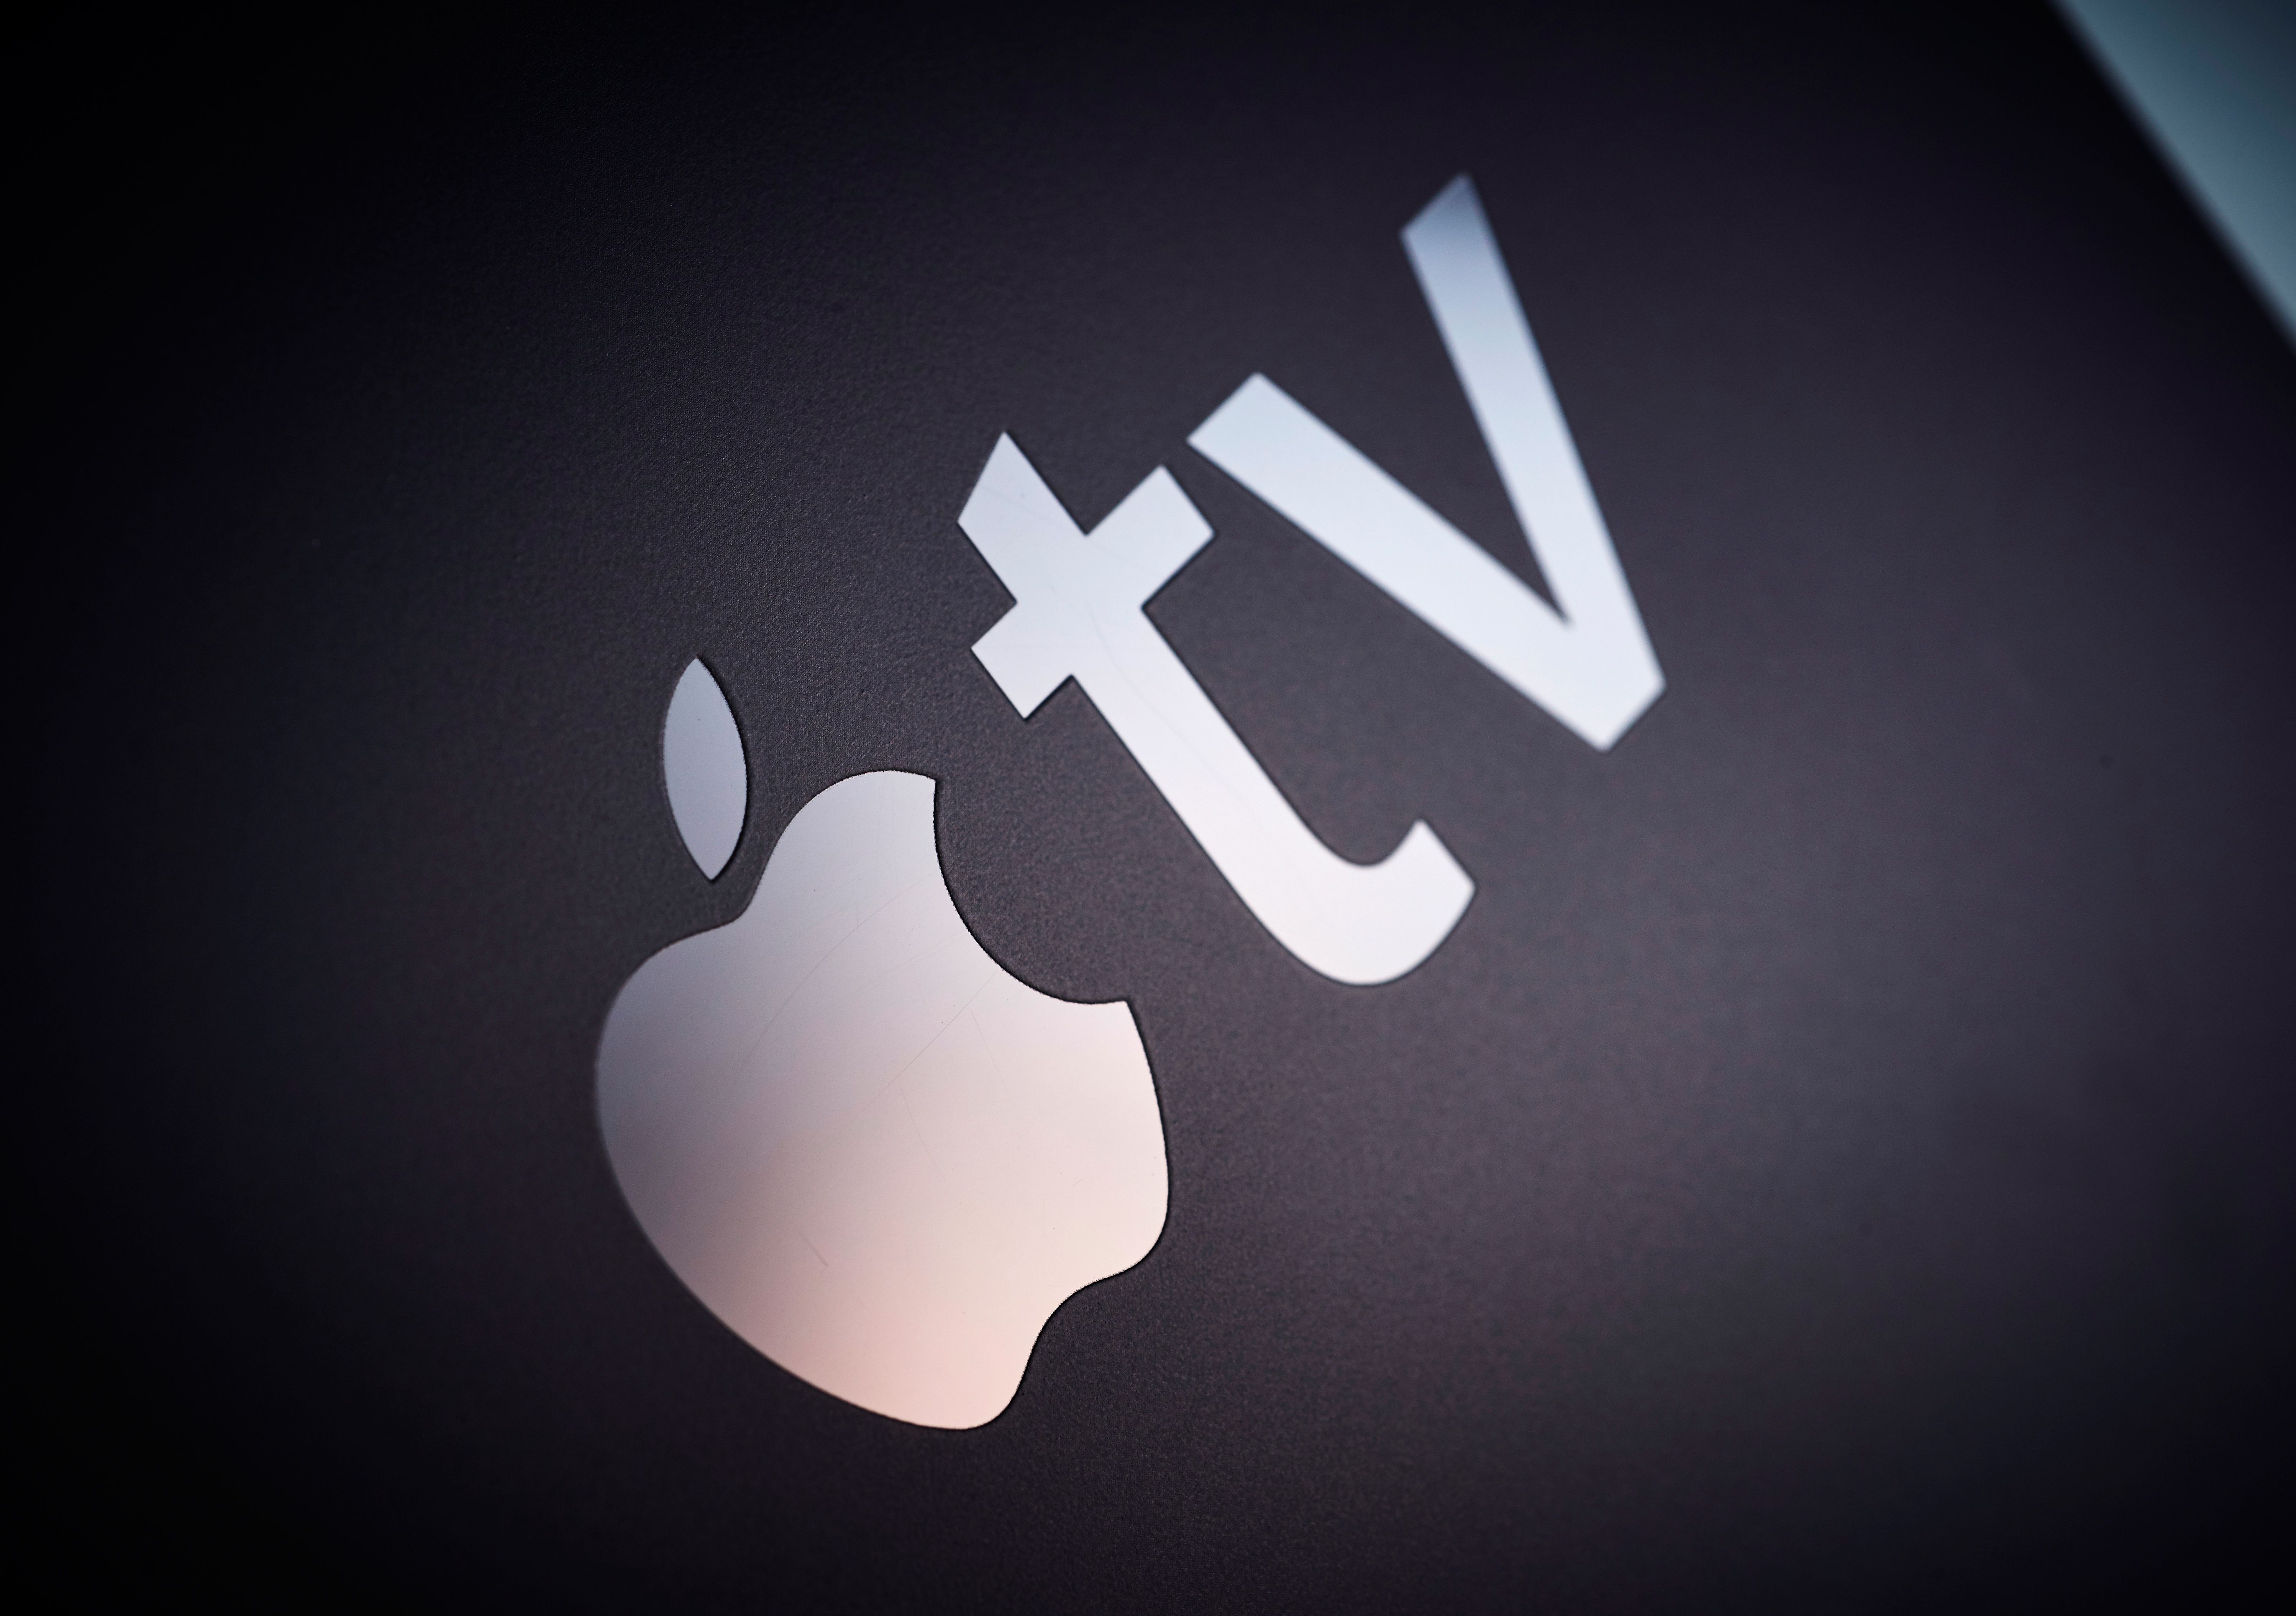 Apple s TV Plans What We Know So Far Including a List of